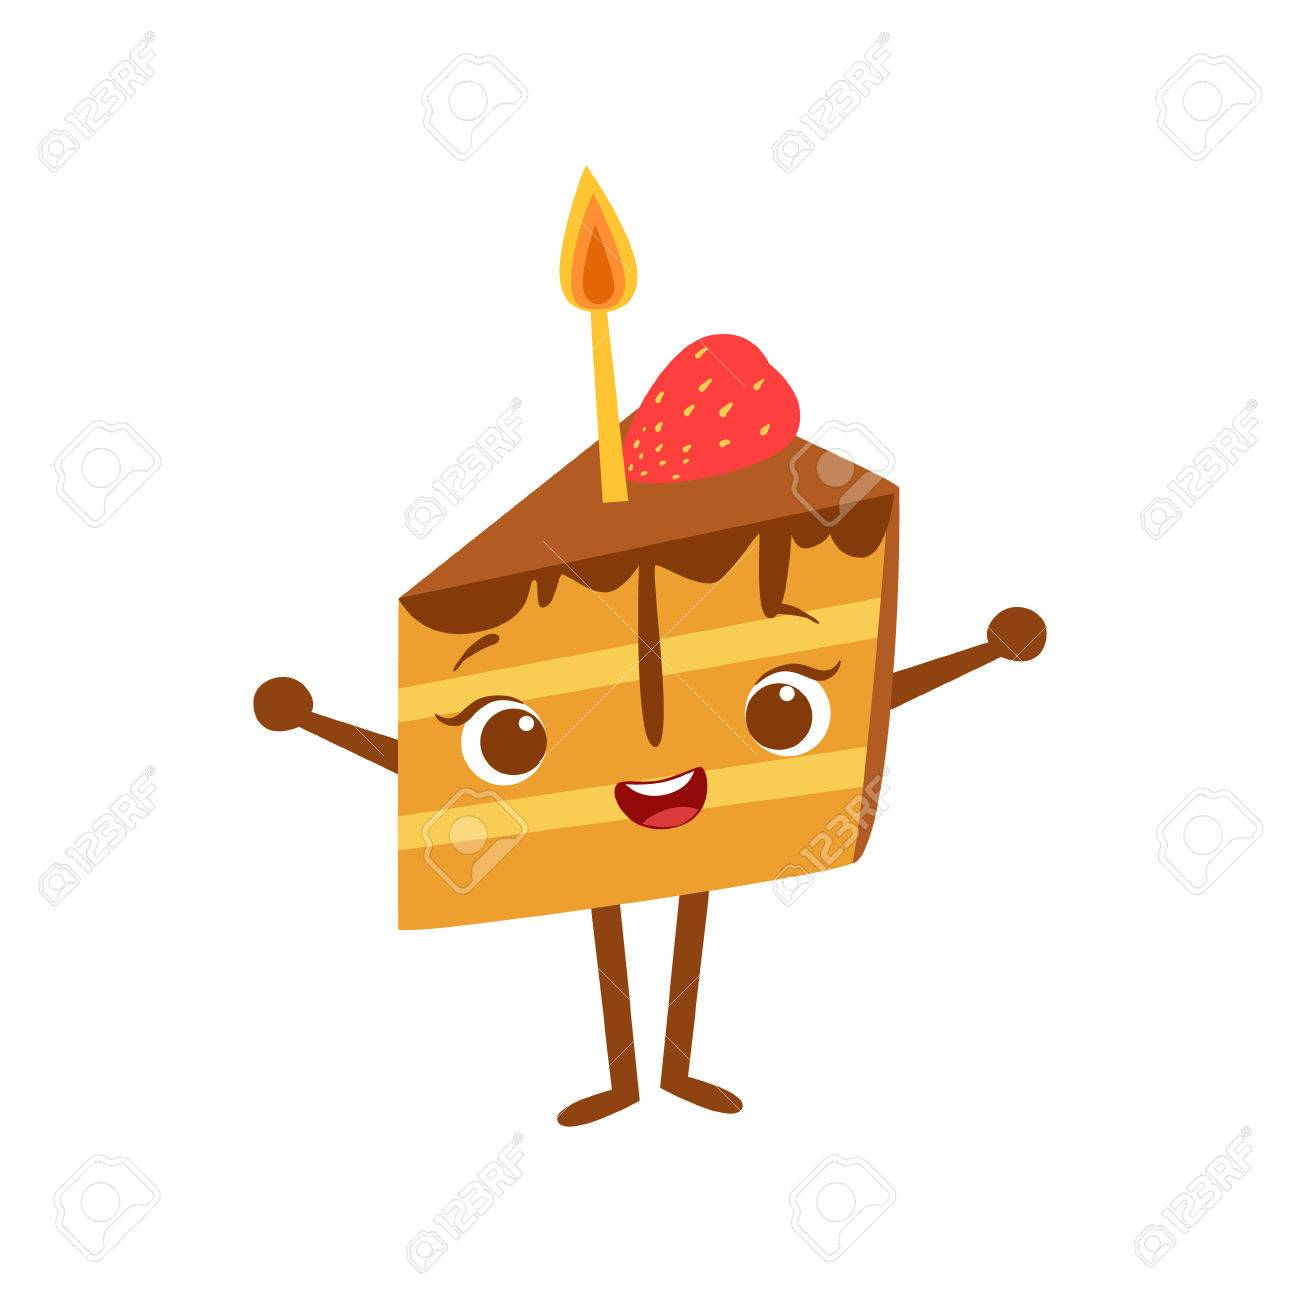 Piece Of Cake With Candle Kids Birthday Party Happy Smiling Animated